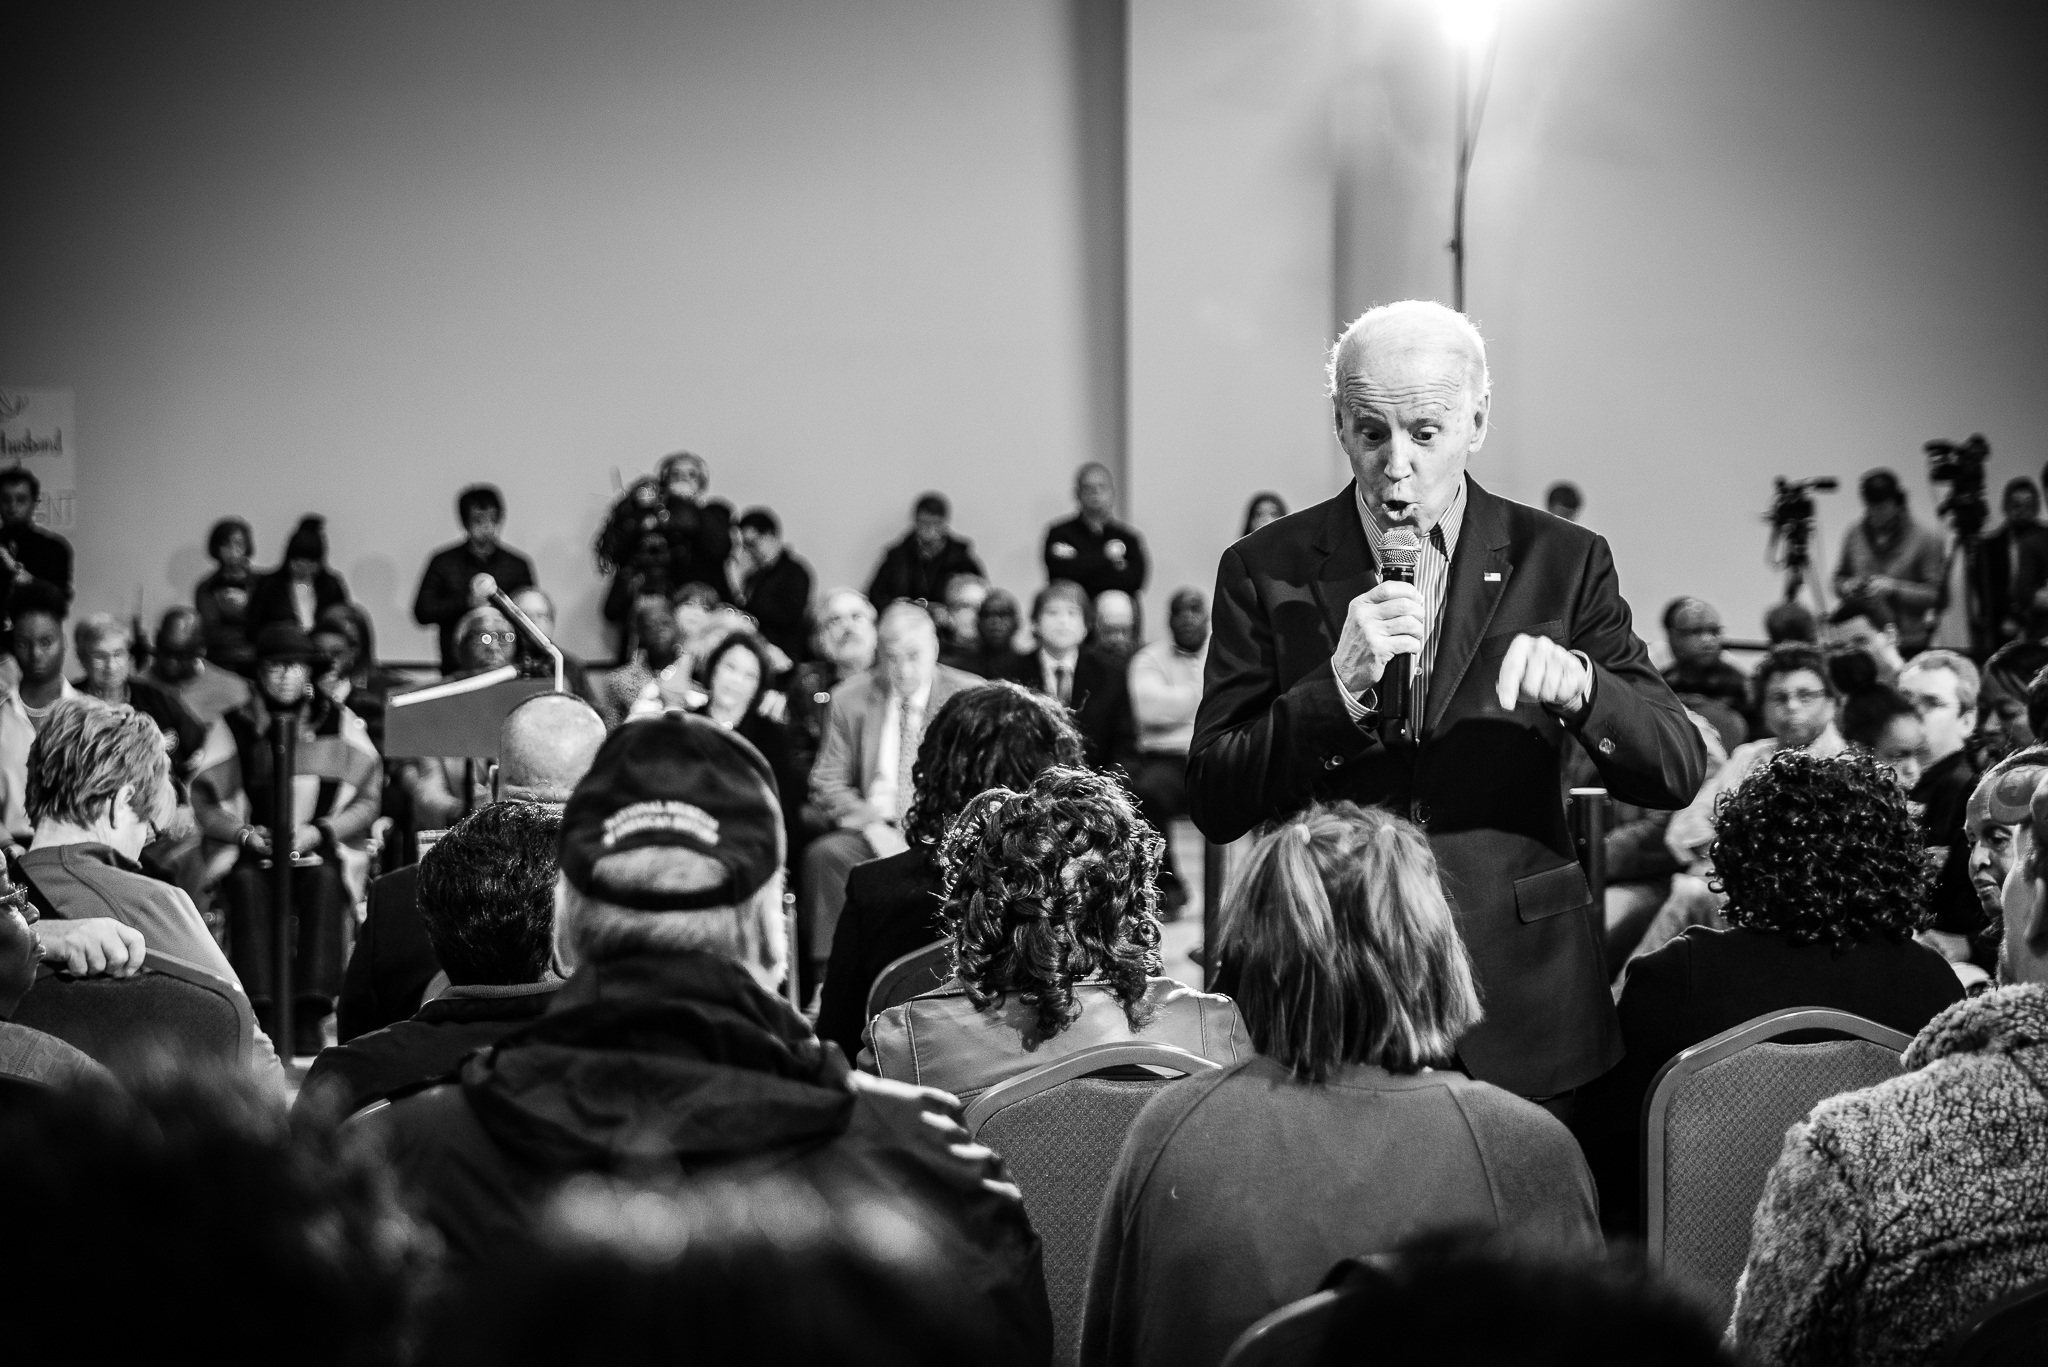 Joe Biden faces down voter, Marybeth Berry, to answer a critical question at a rally in Sumter, South Carolina. February 28, 2020. Photo: Lance Monotone.